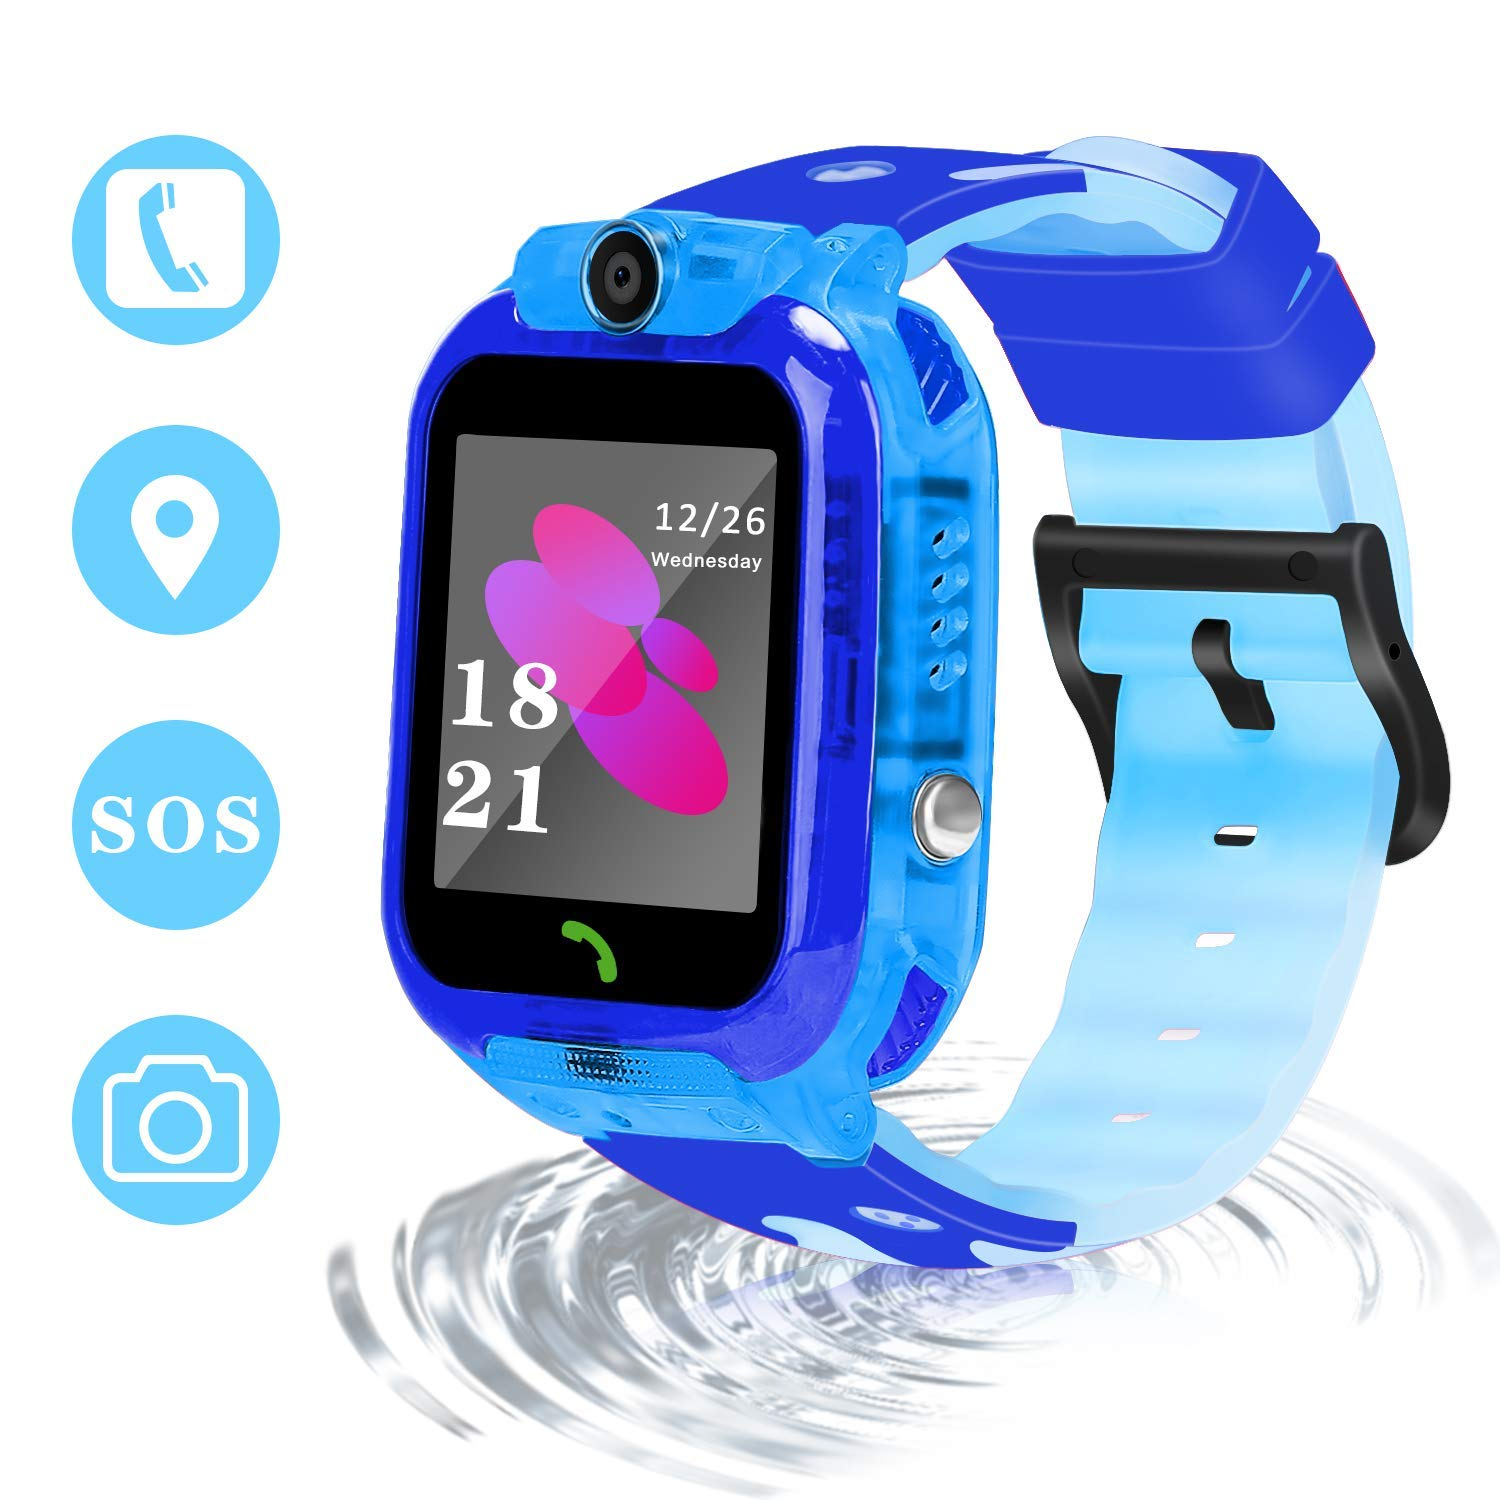 GUANLV Smart Watch for Kids Smart Phone Watch Waterproof GPS Tracker App Remote Control Unlocked SOS with Voice Chat Camera Game Learning Toys 3-12 Ages Boy Girl Best Birthday Gift (Black) by GUANLV (Image #1)